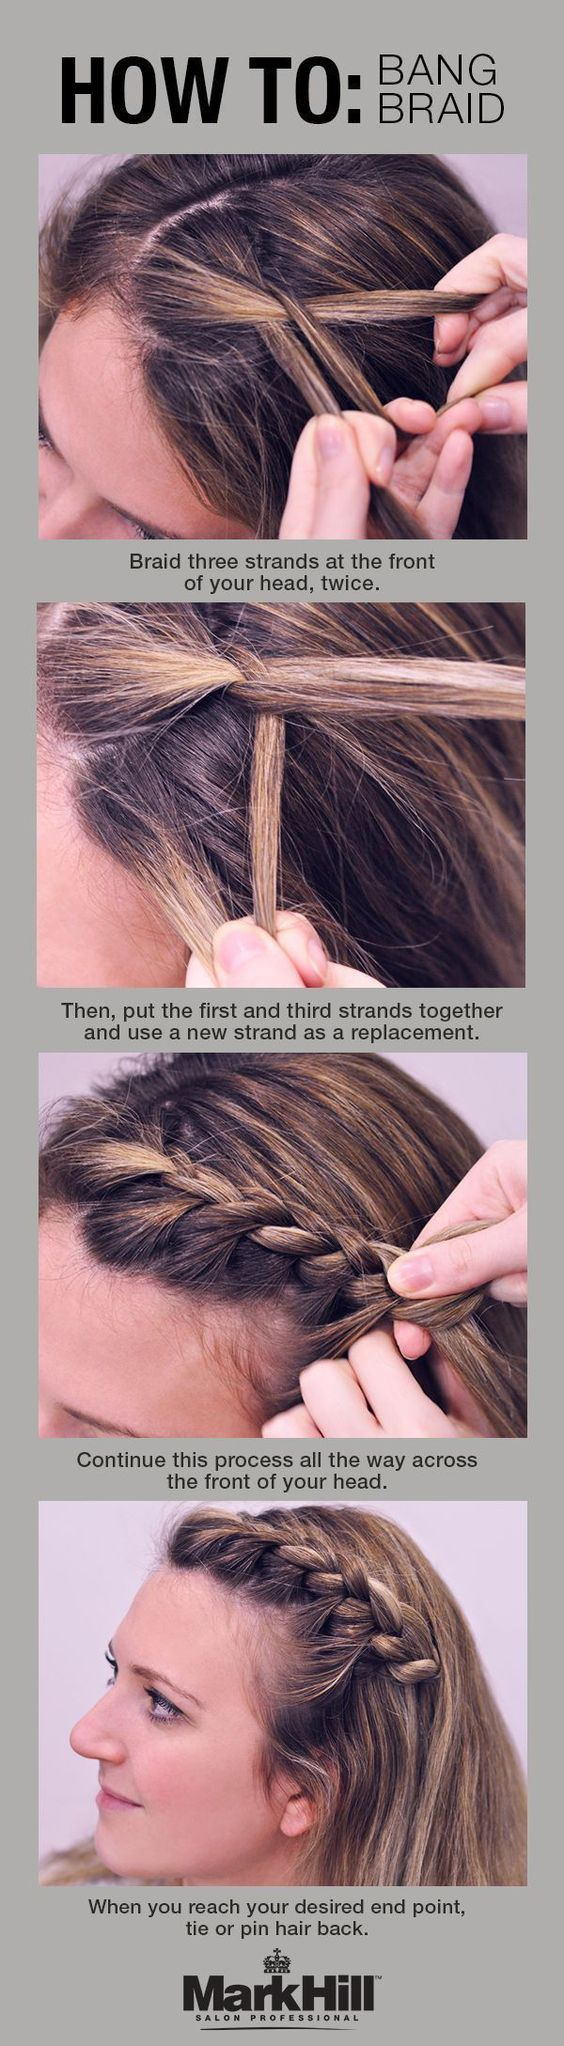 10 Easy Hairstyles For Bangs To Get Them Out Of Your Face   Gurl.com